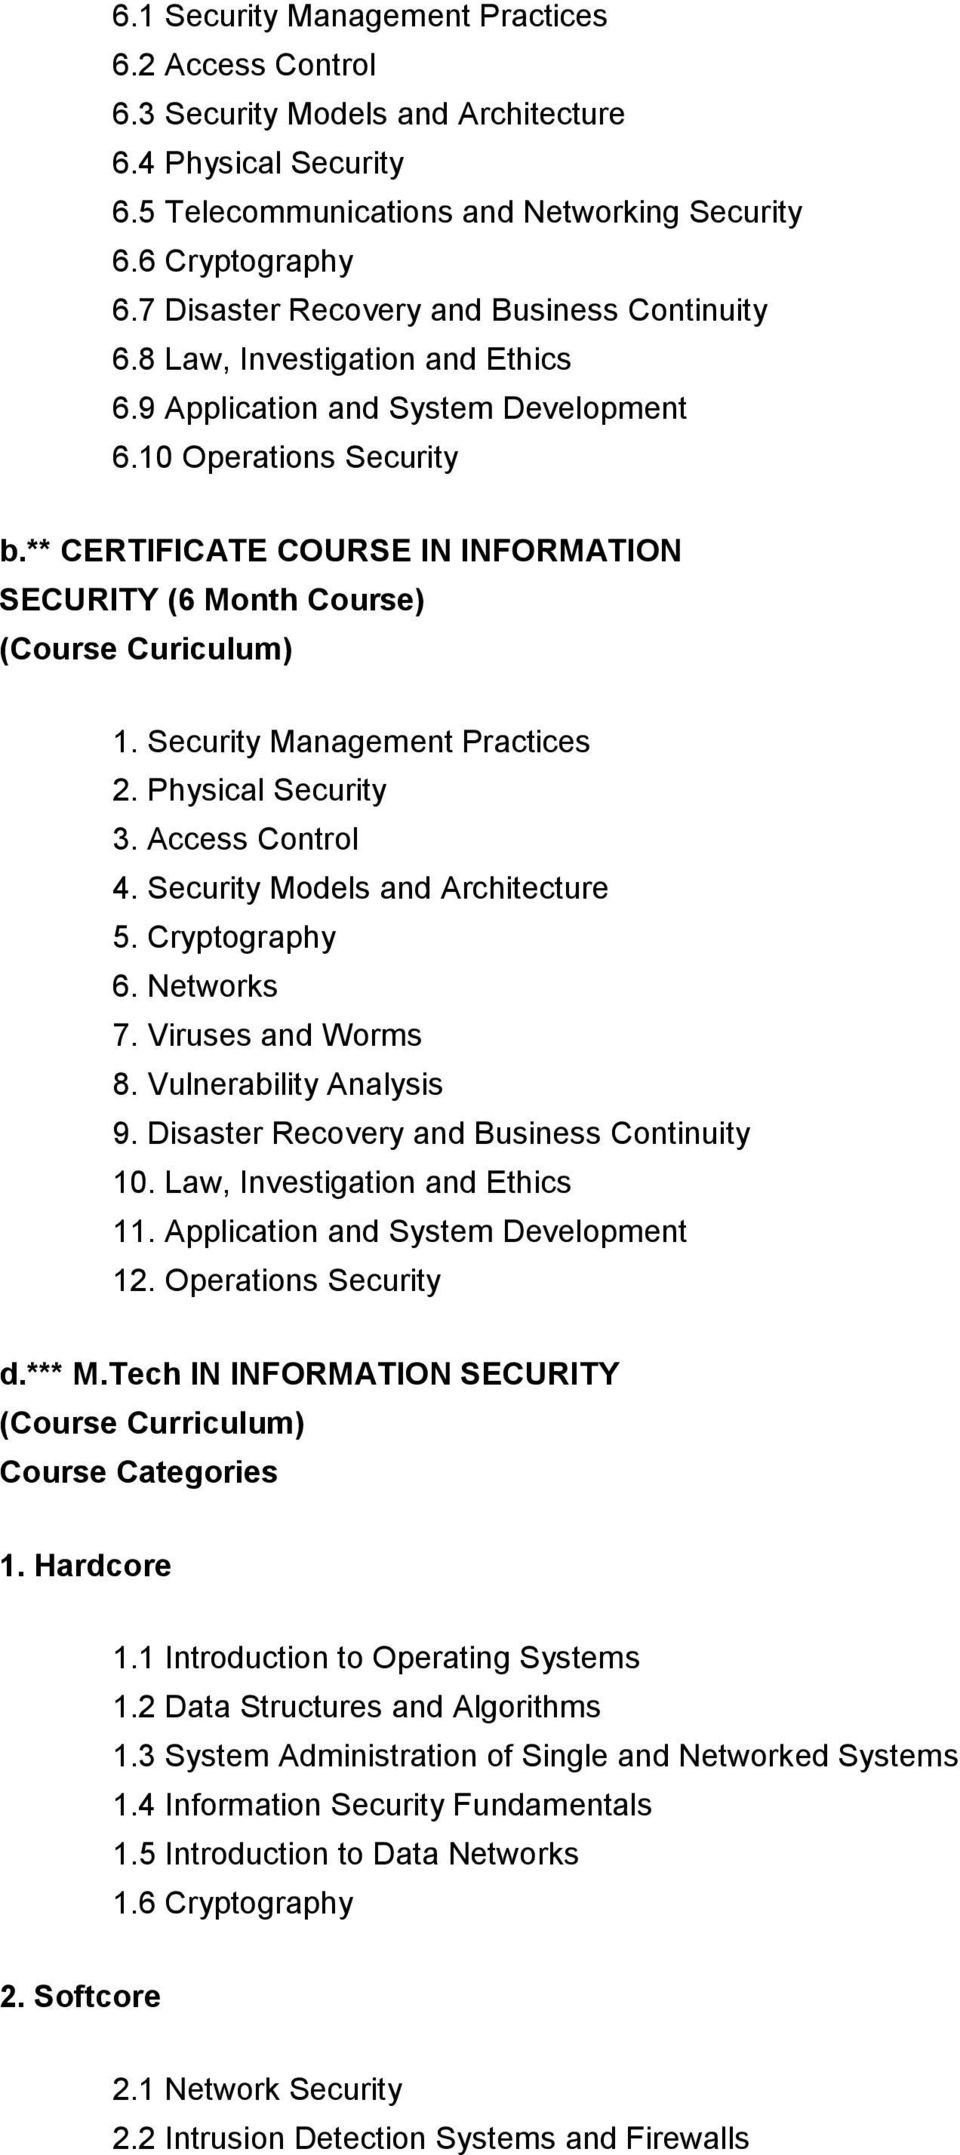 ** CERTIFICATE COURSE IN INFORMATION SECURITY (6 Month Course) (Course Curiculum) 1. Security Management Practices 2. Physical Security 3. Access Control 4. Security Models and Architecture 5.